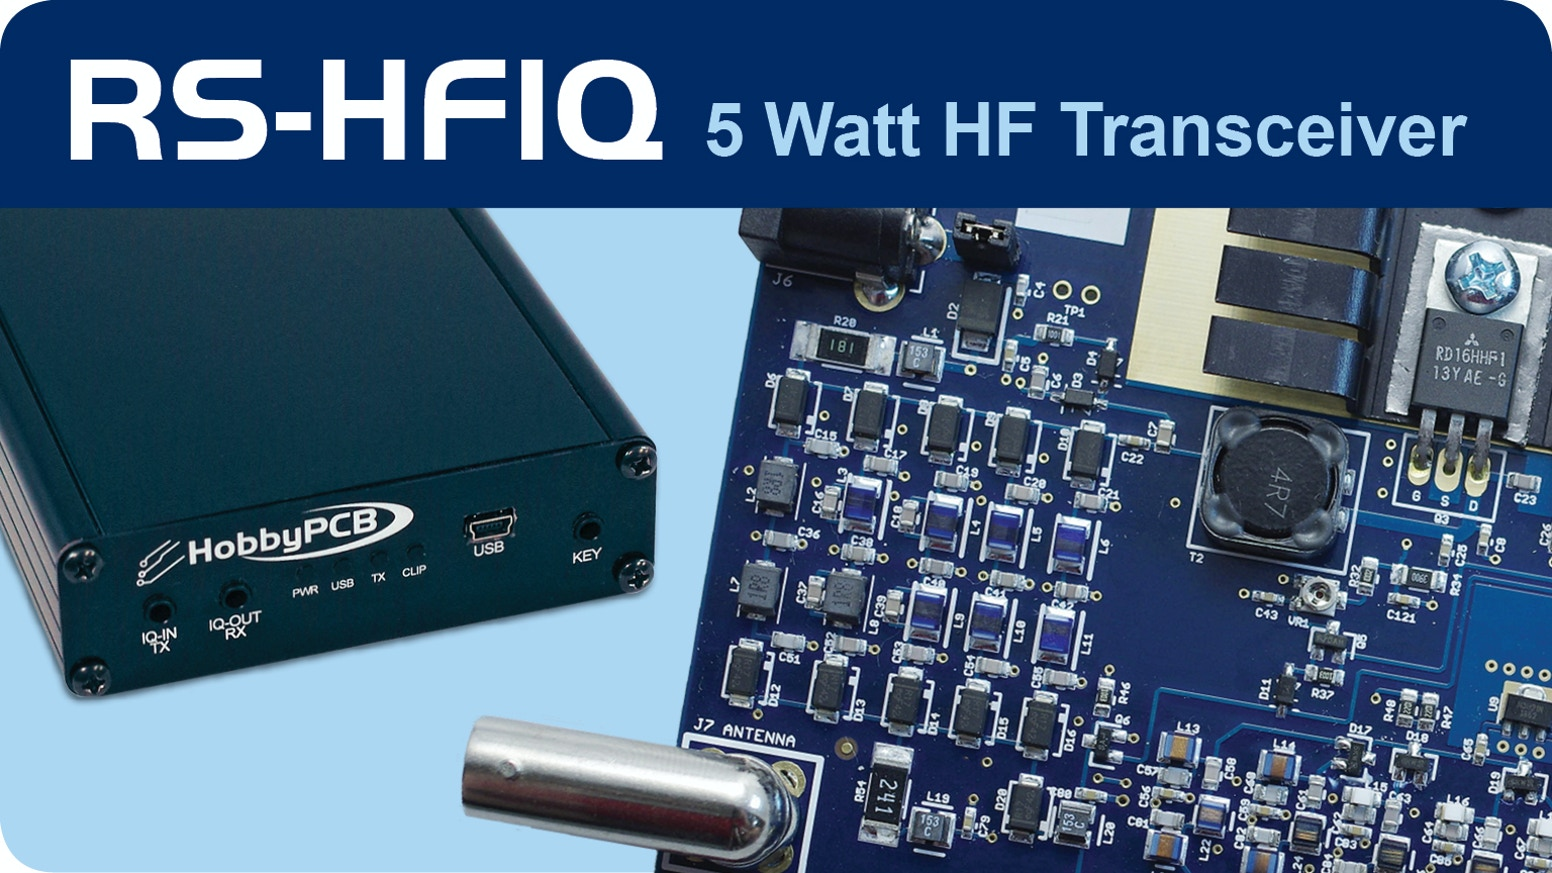 Rs Hfiq 5w Software Defined Radio Sdr Tranceiver By Hobbypcb Llc This Is 1 5 Watt Fm Transmitter Circuit Should Be Able To The A High Performance Transceiver